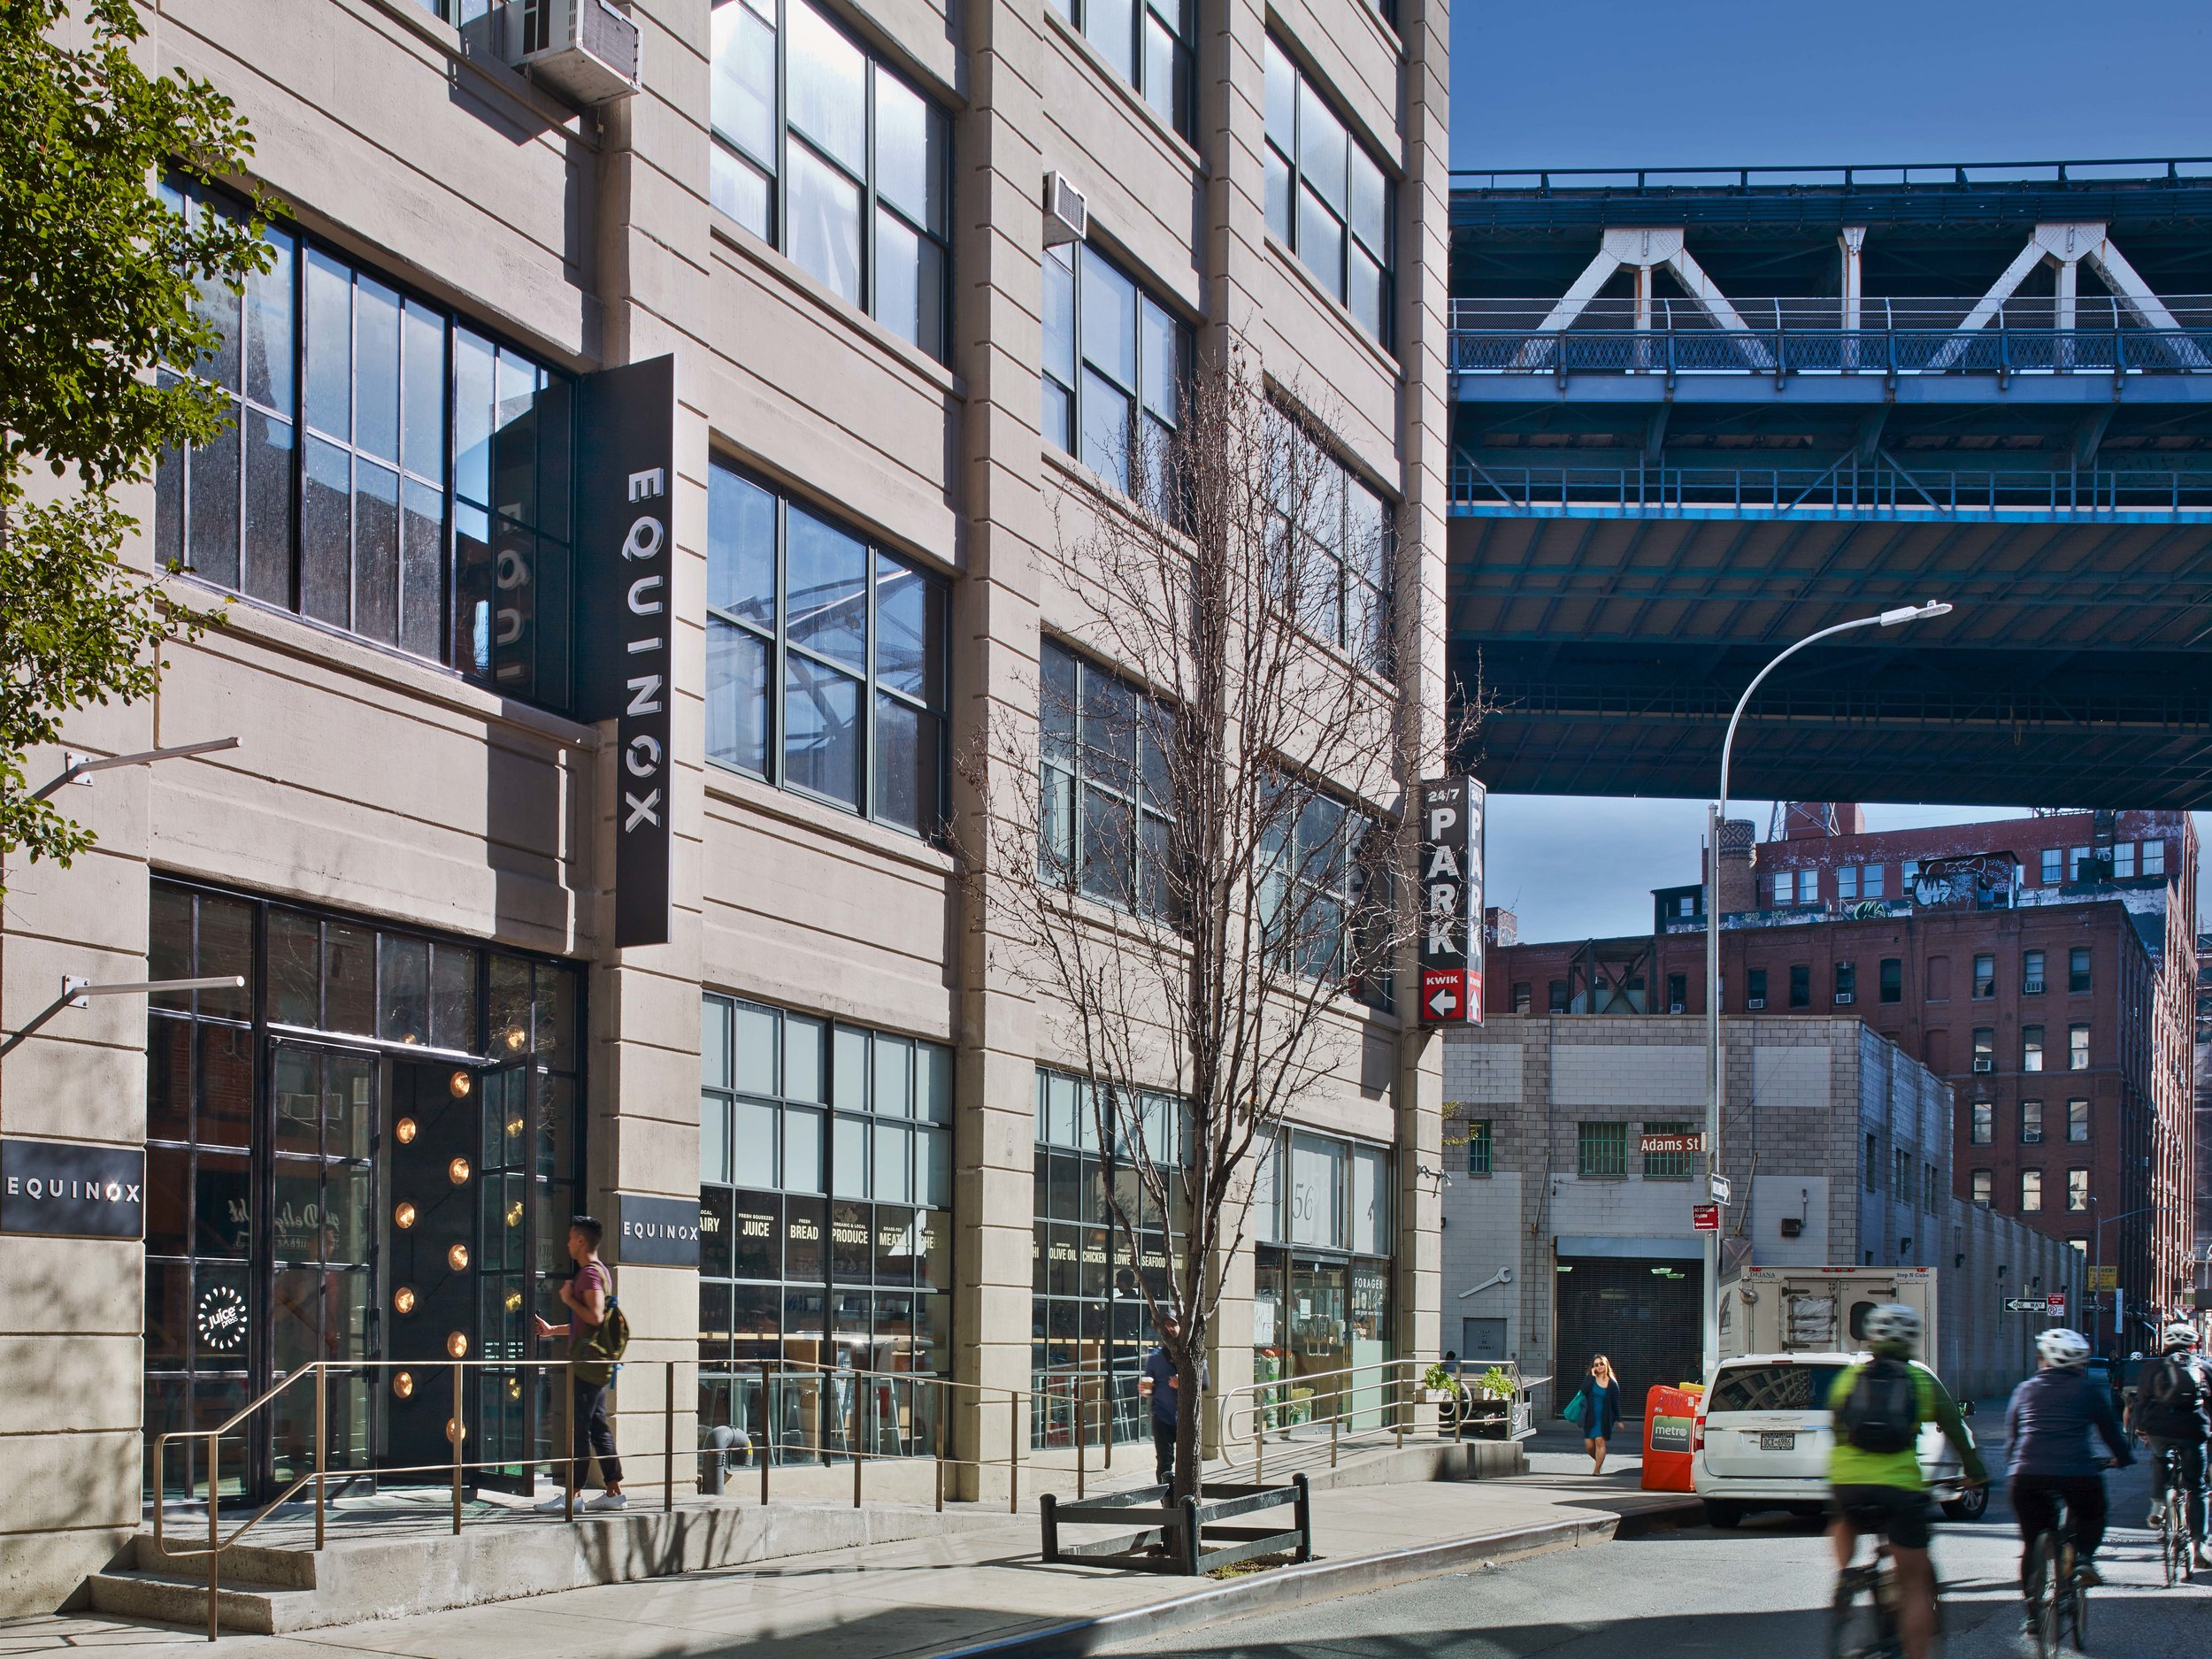 Equinox Dumbo Entrance and Bridge